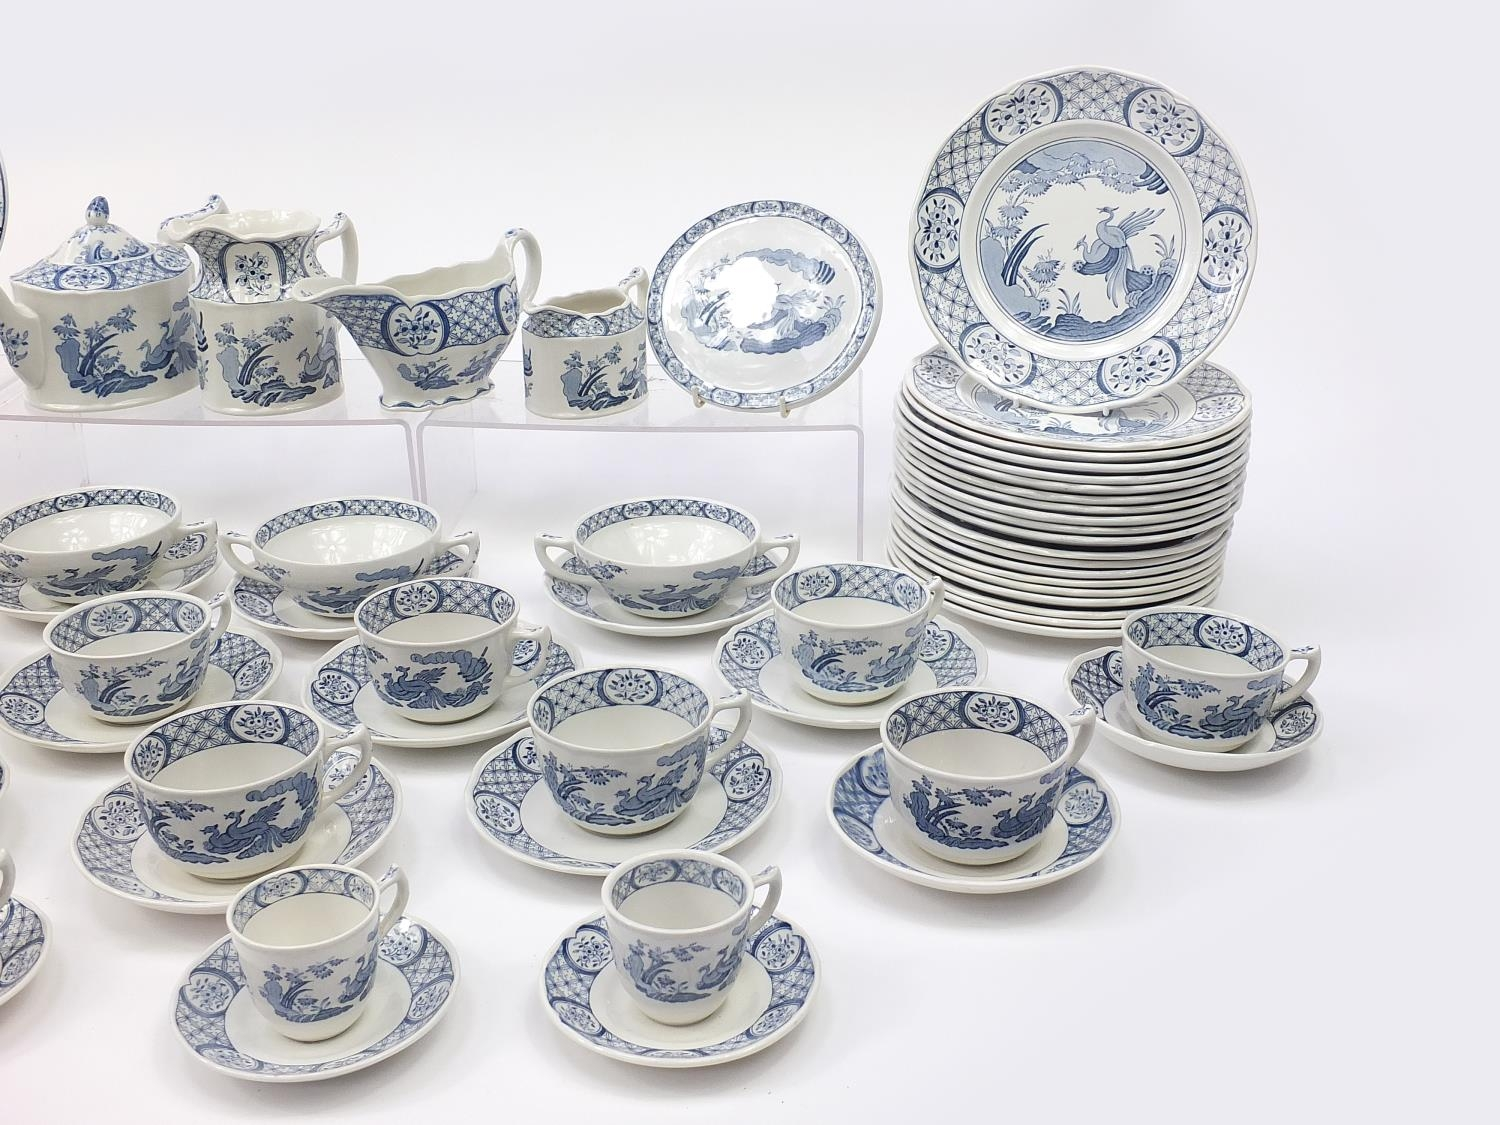 Collection of Furnivals & Masons Old Chelsea dinner and teaware including teapot and stand, cups - Image 4 of 5